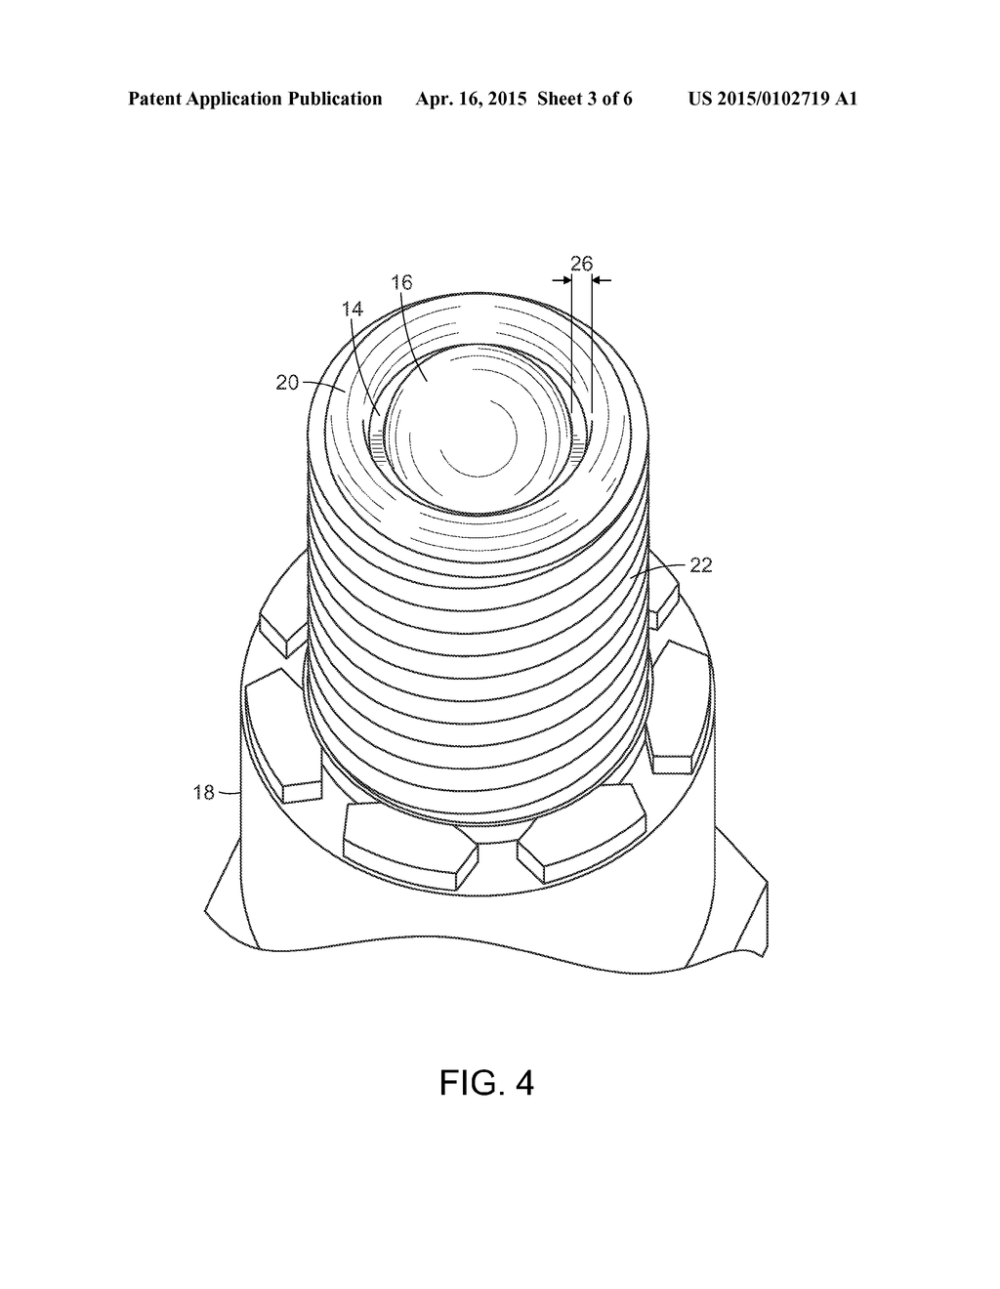 medium resolution of plasma ignition plug for an internal combustion engine diagram schematic and image 04